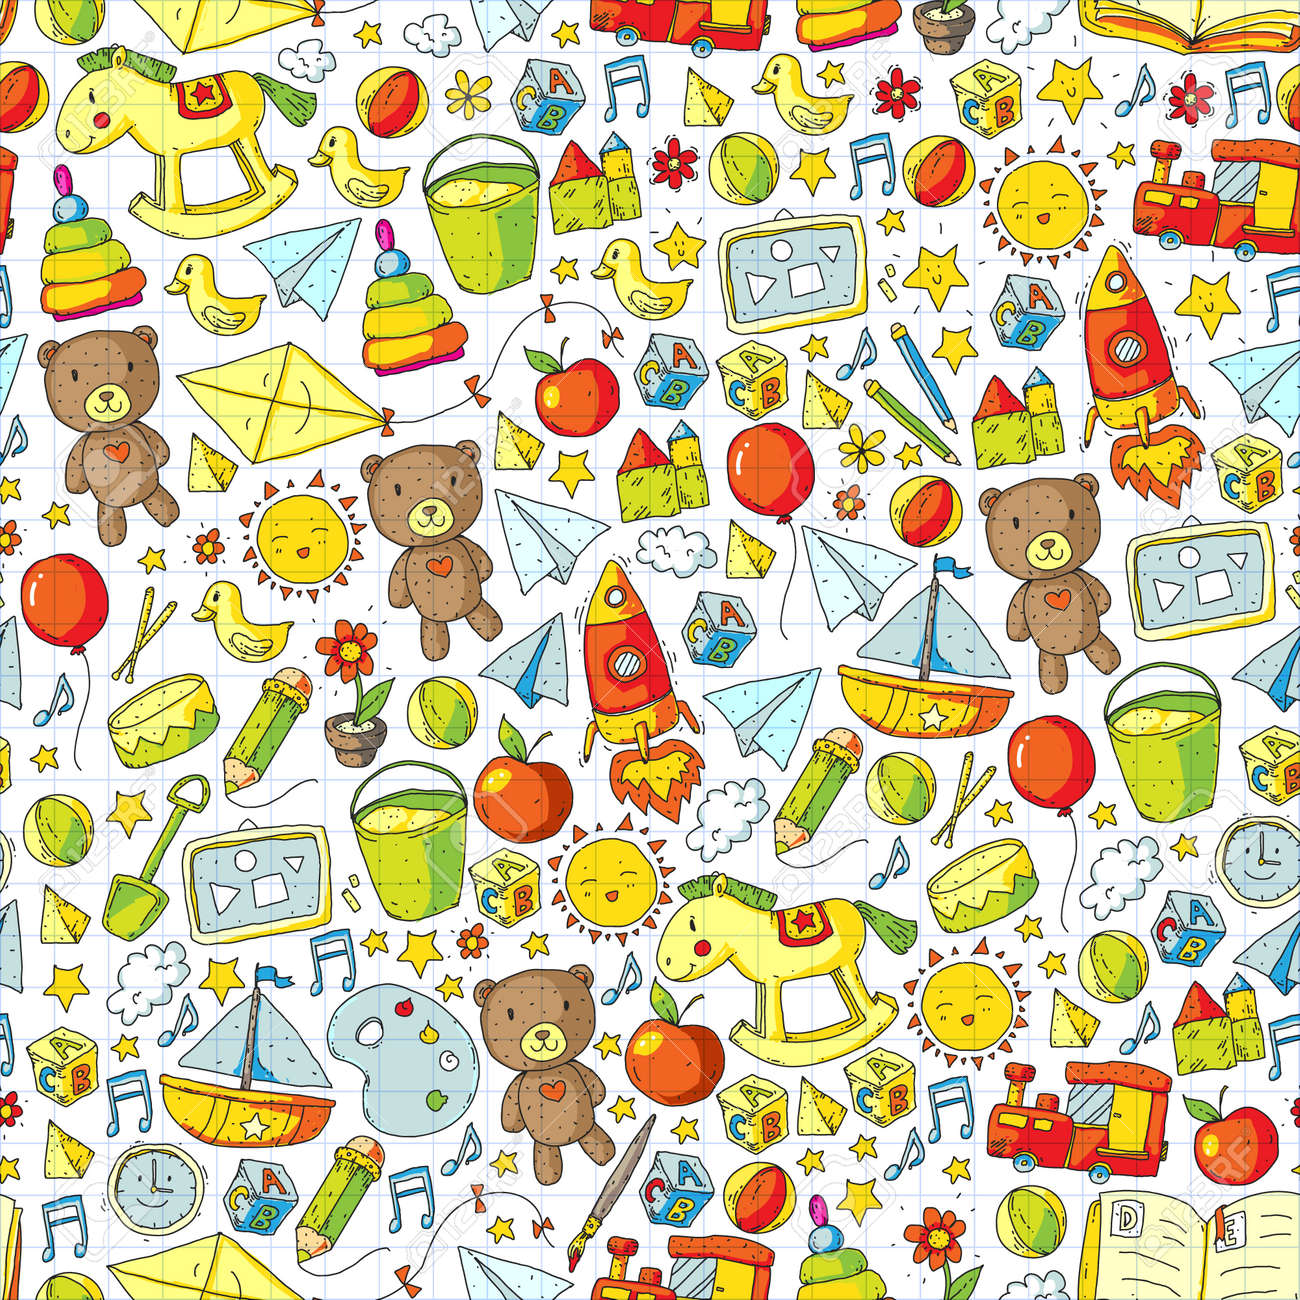 Kindergarten Vector seamless pattern with toys and items for education - 126800905